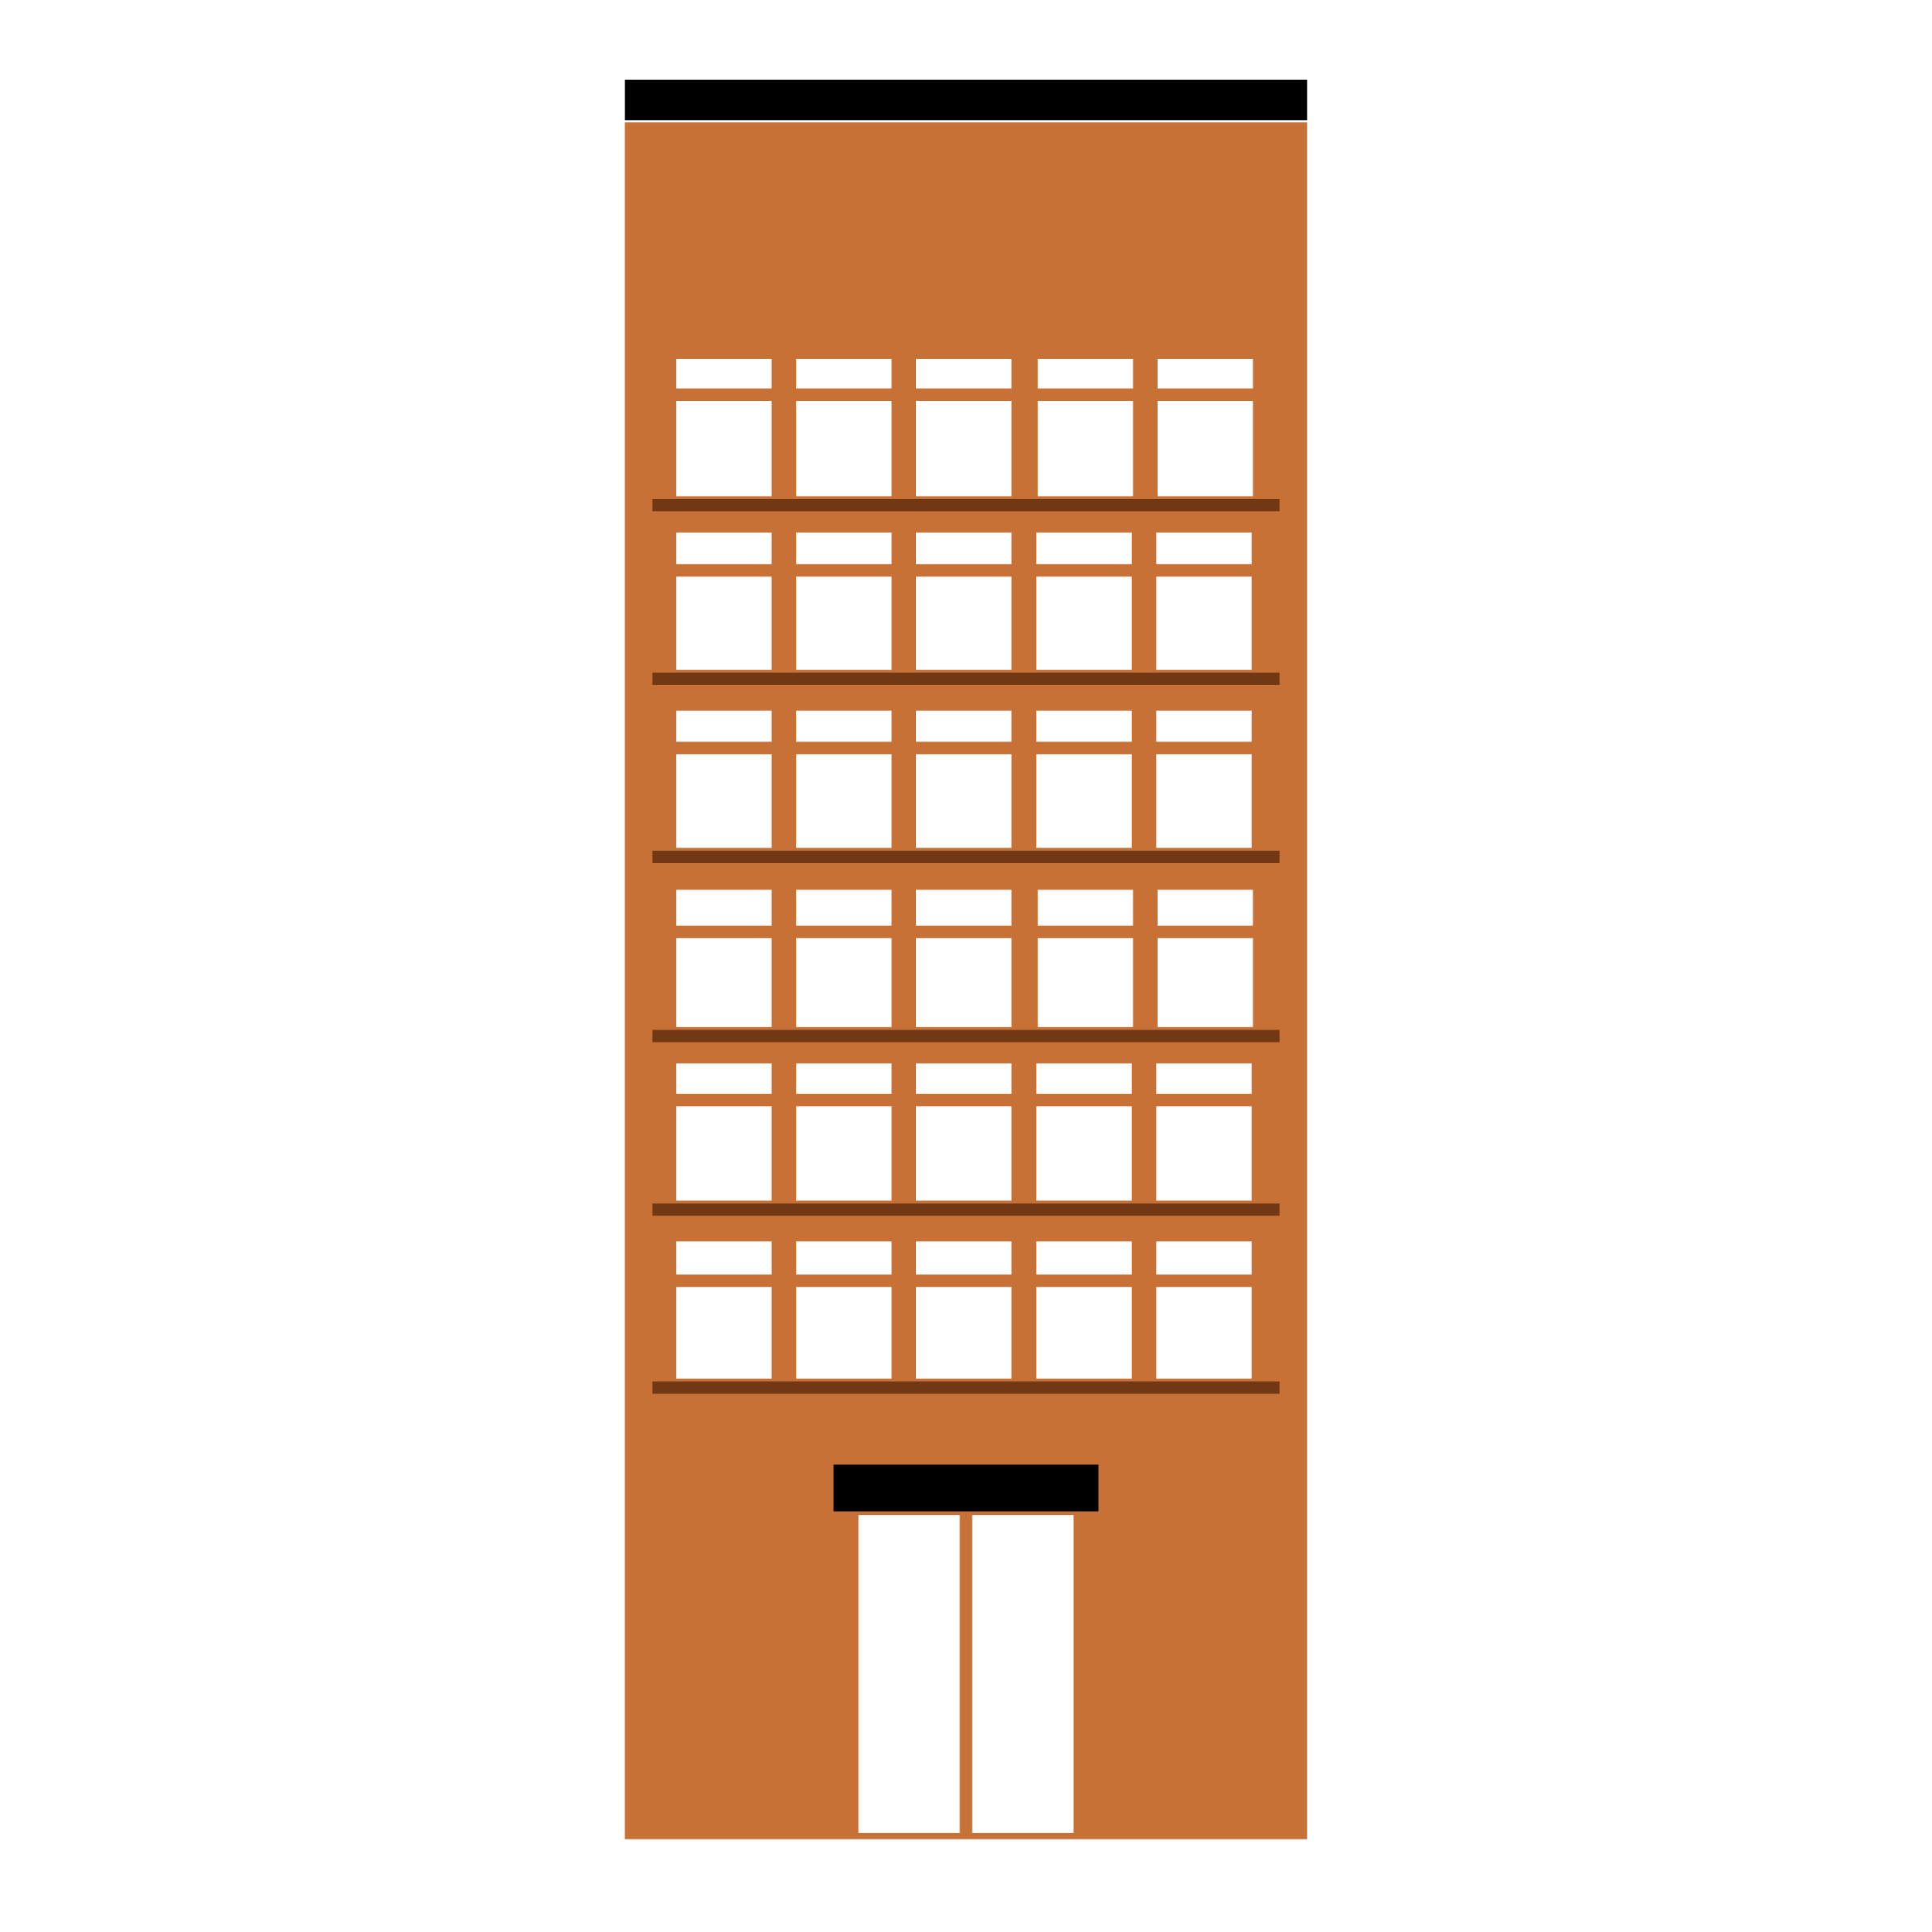 BUILDING-Medium Tall- 3-color-flat-with-empty-space-to-write-design by oldifluff